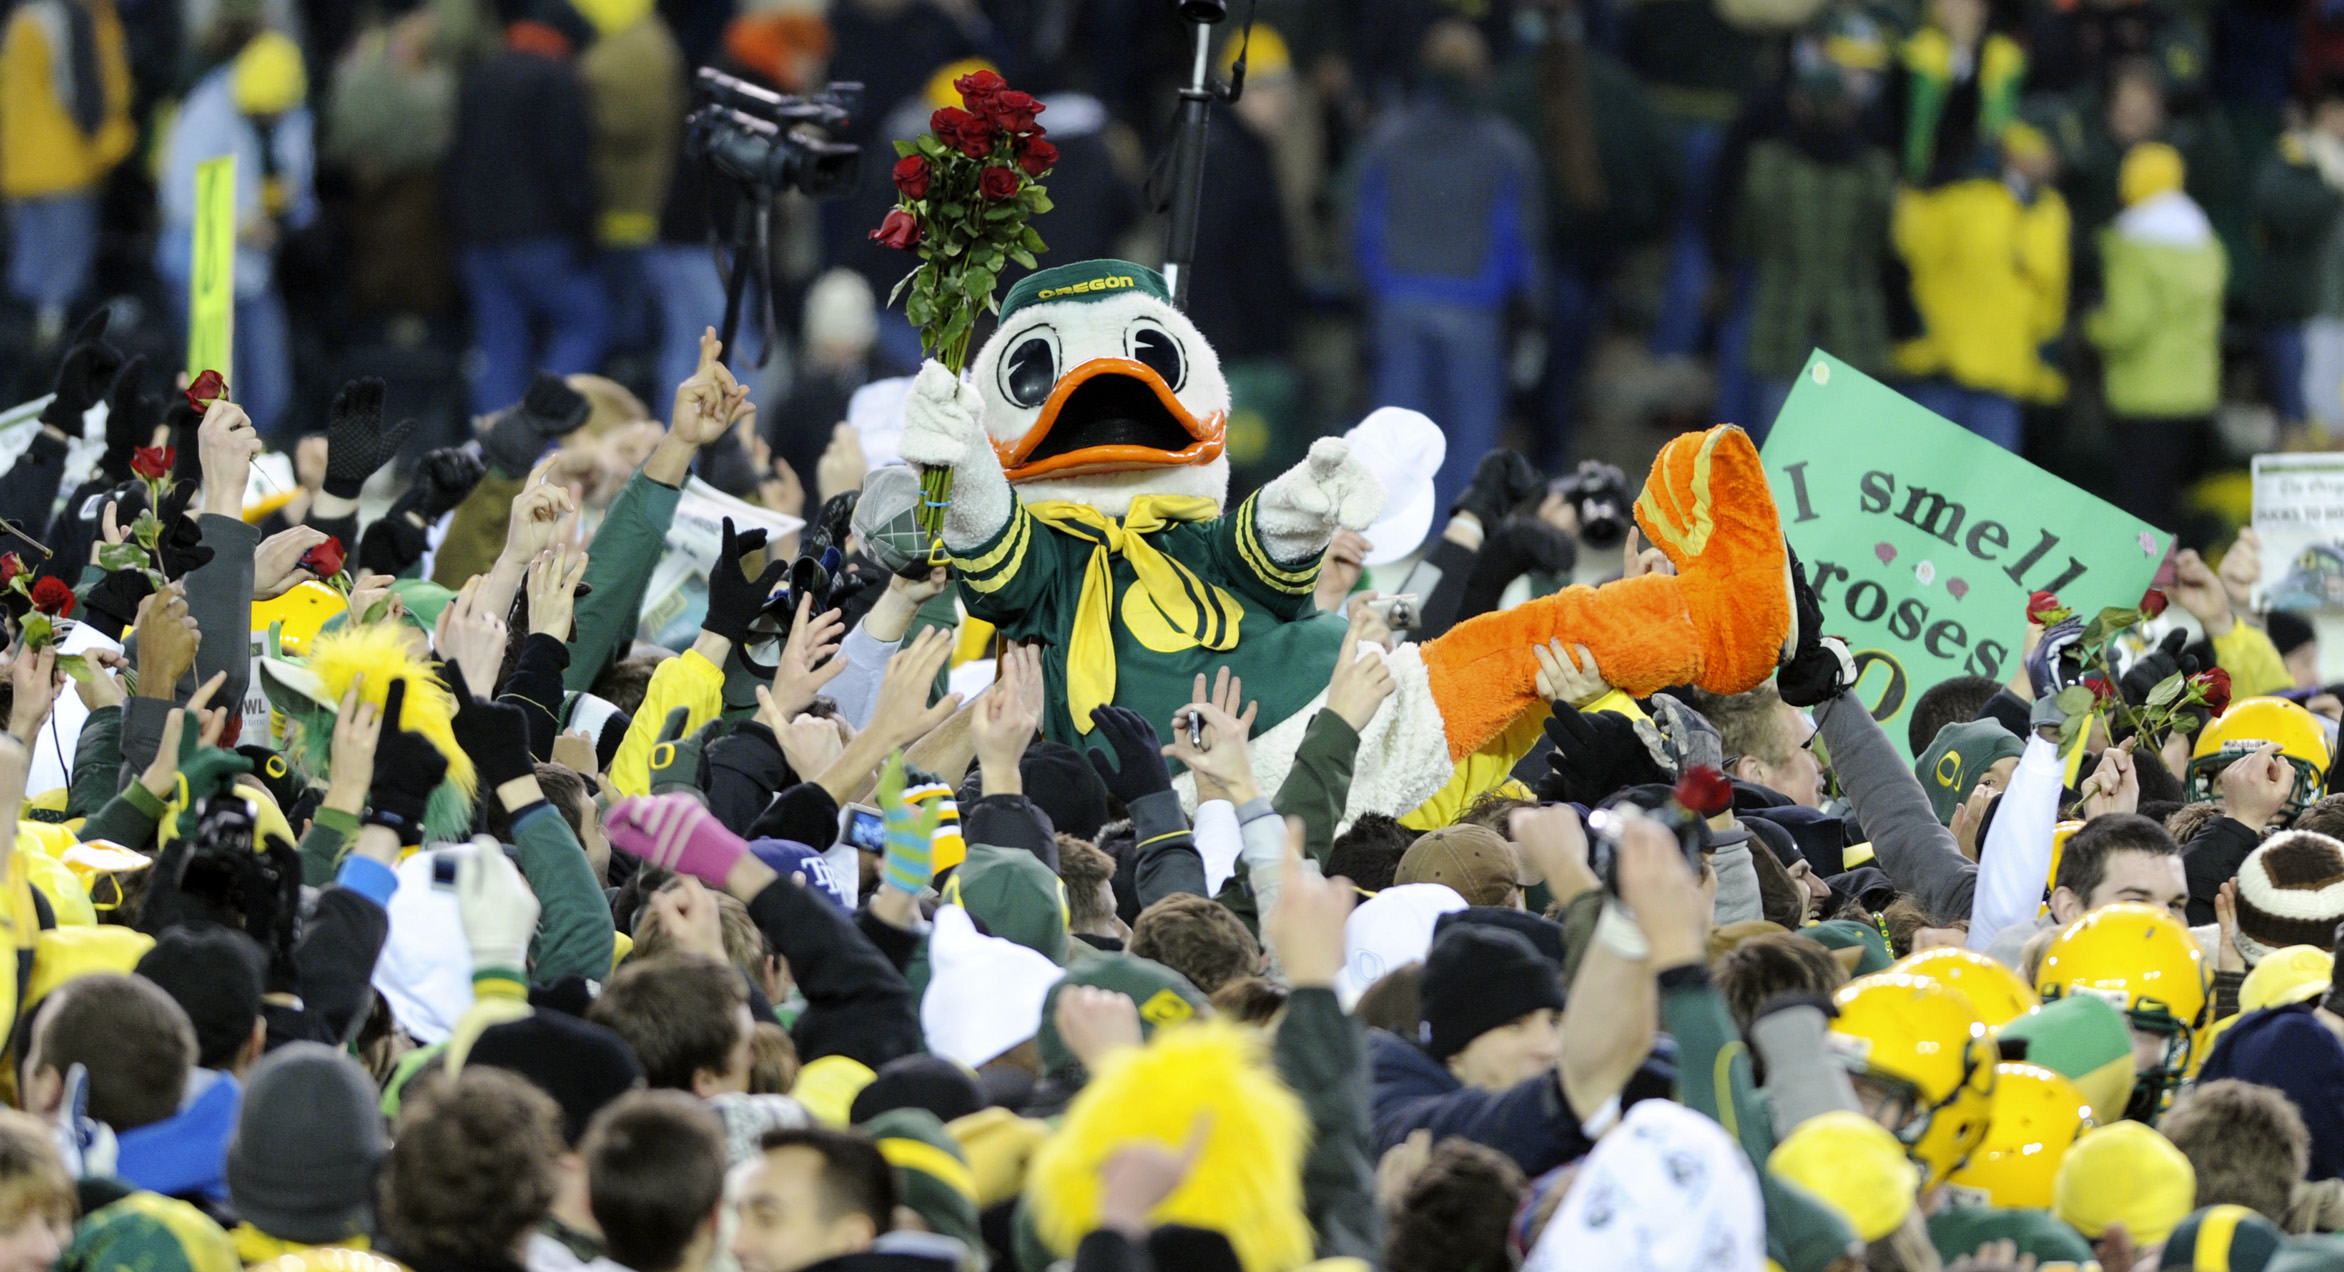 Oregon's duck mascot is hoisted above celebrating fans and players, carrying a bunch of red roses, at the end of an NCAA college football game in Eugene, Ore., Thursday, Dec. 3, 2009. Oregon beat Oregon State 37-33. (AP Photo/Greg Wahl-Stephens)